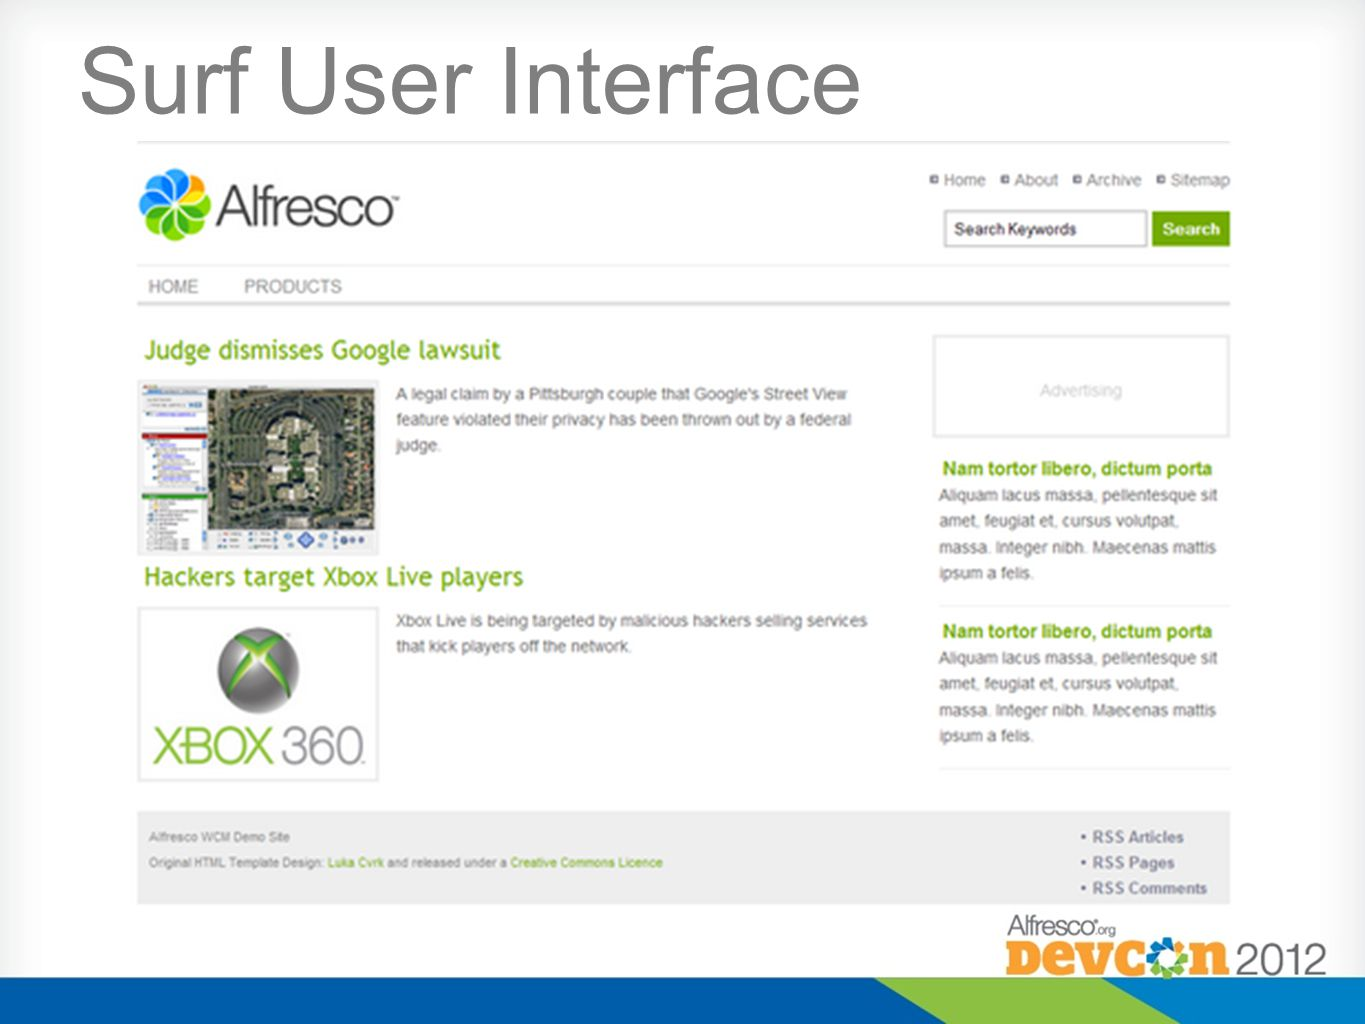 Surf User Interface